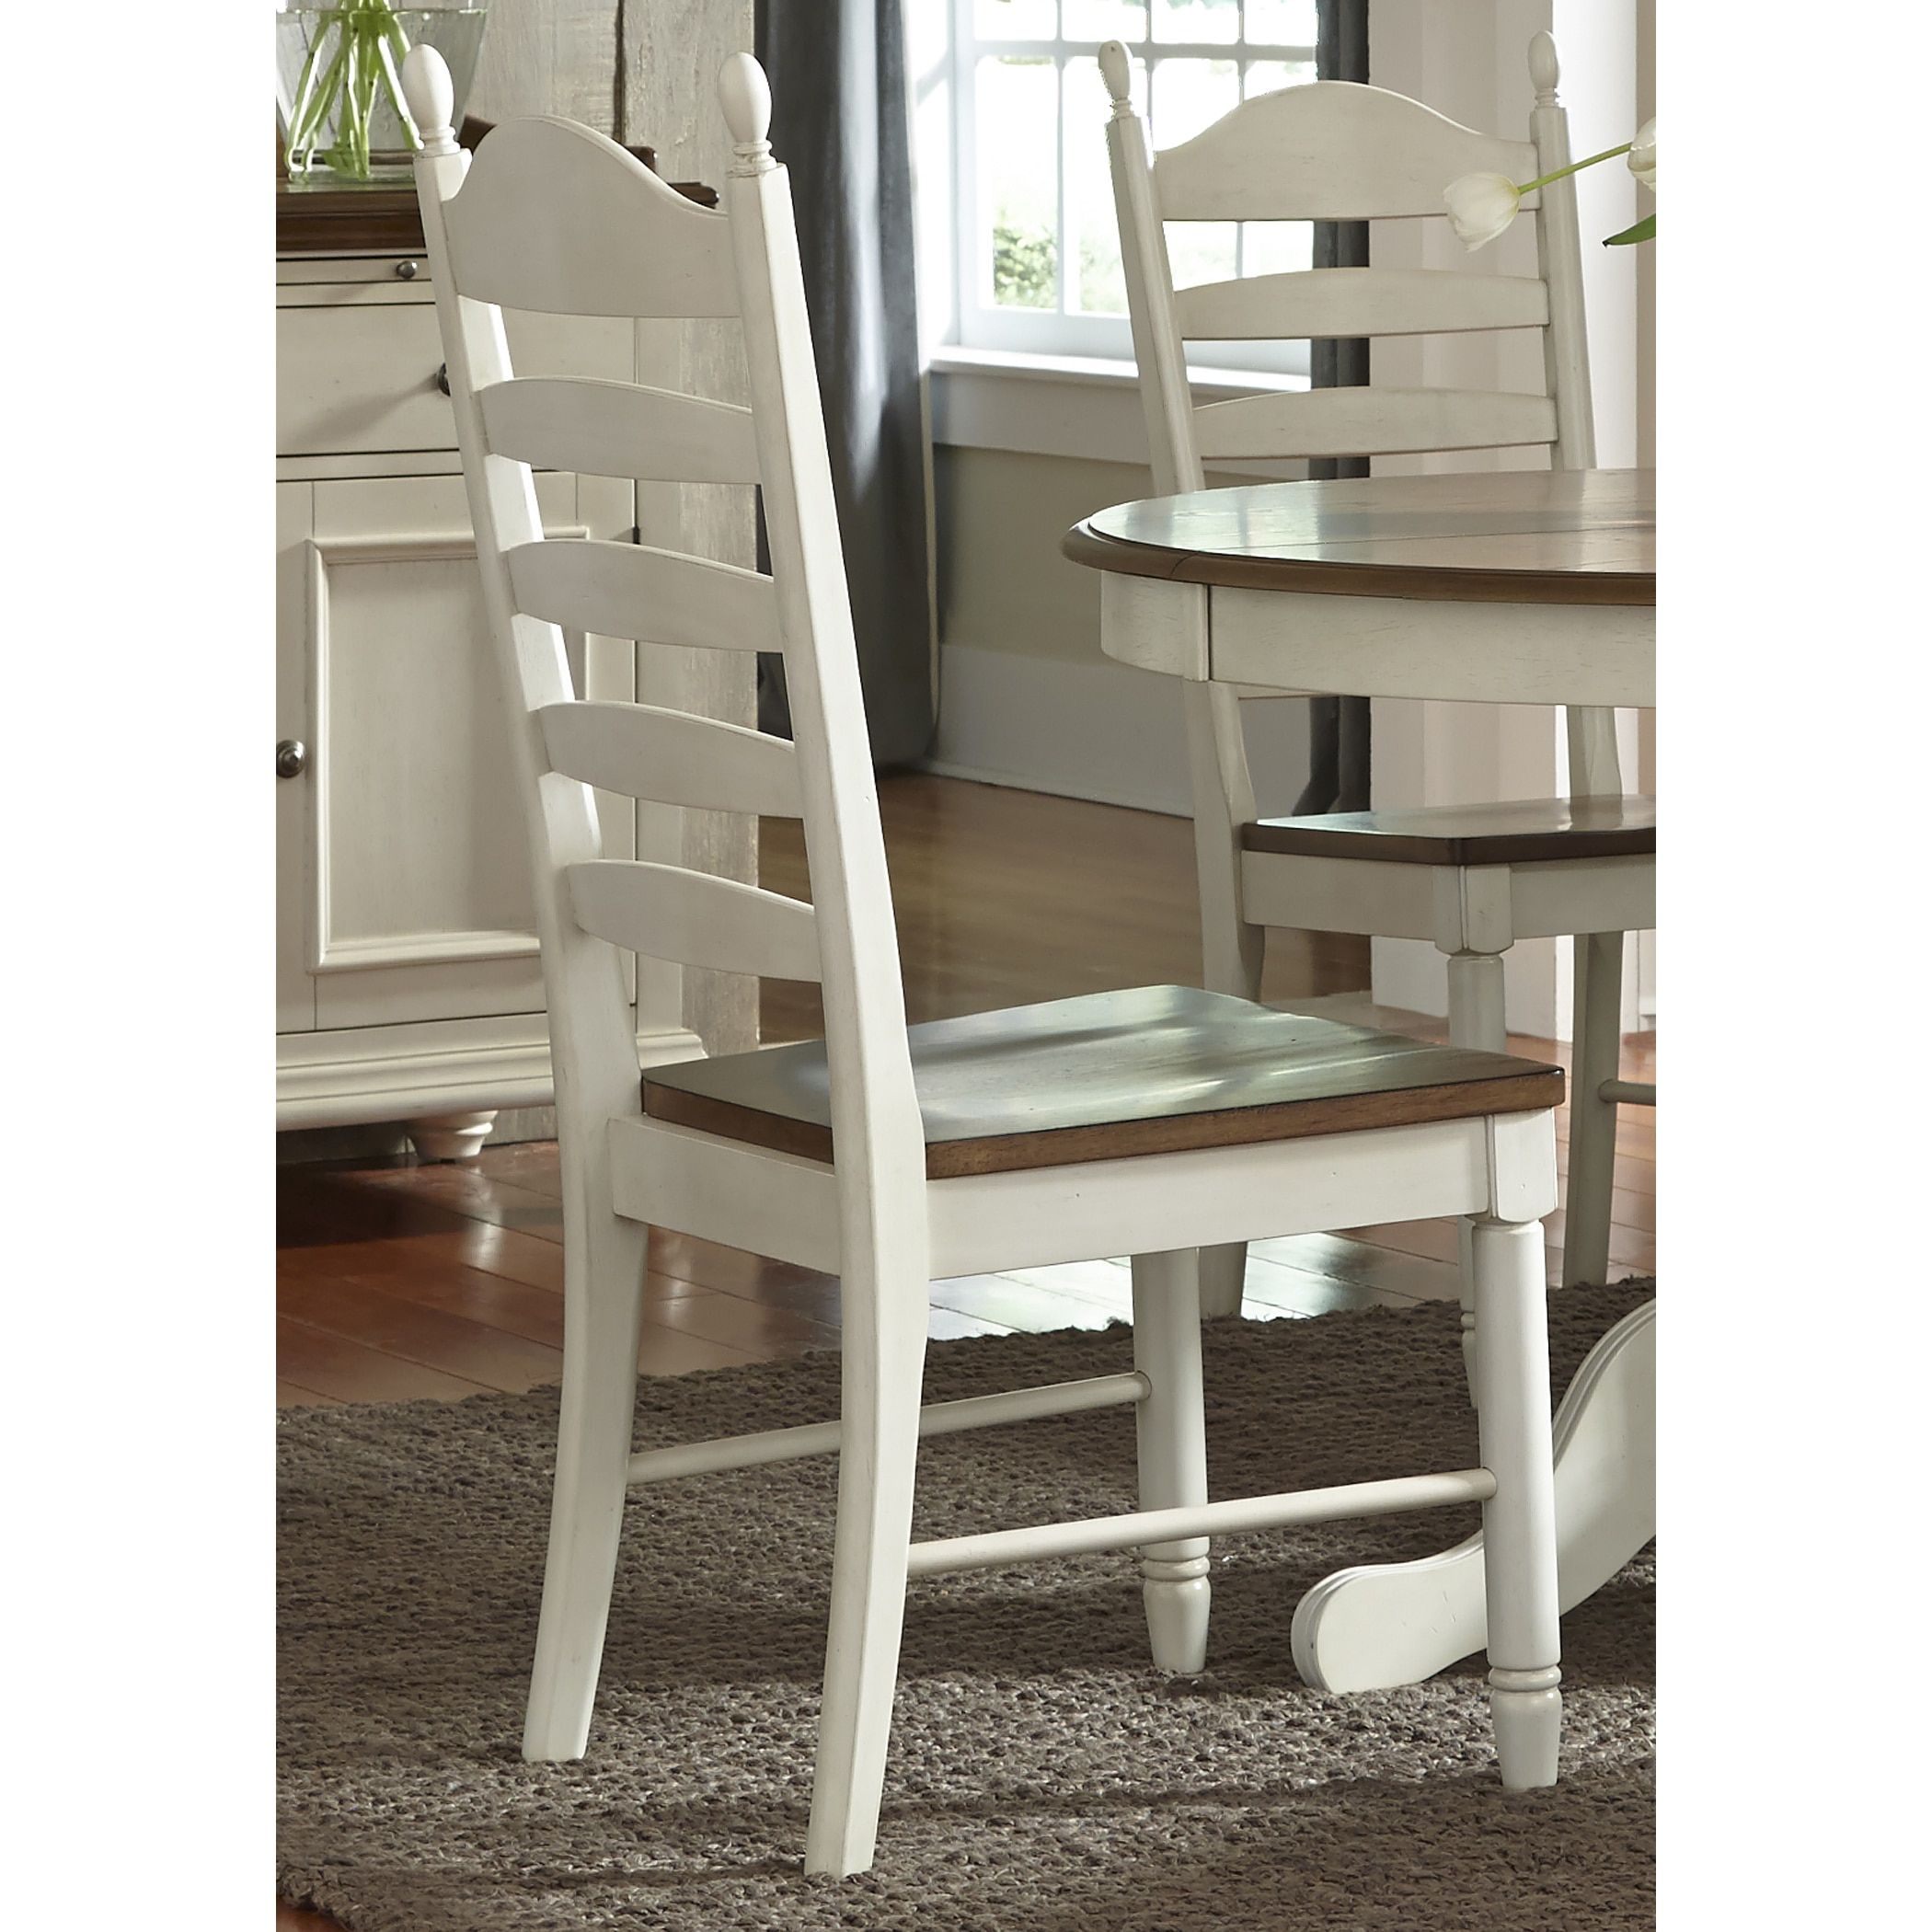 Springfield Farmhouse Dining Room Chairs Home Goods Free Shipping On Orders Over 45 At Overstock